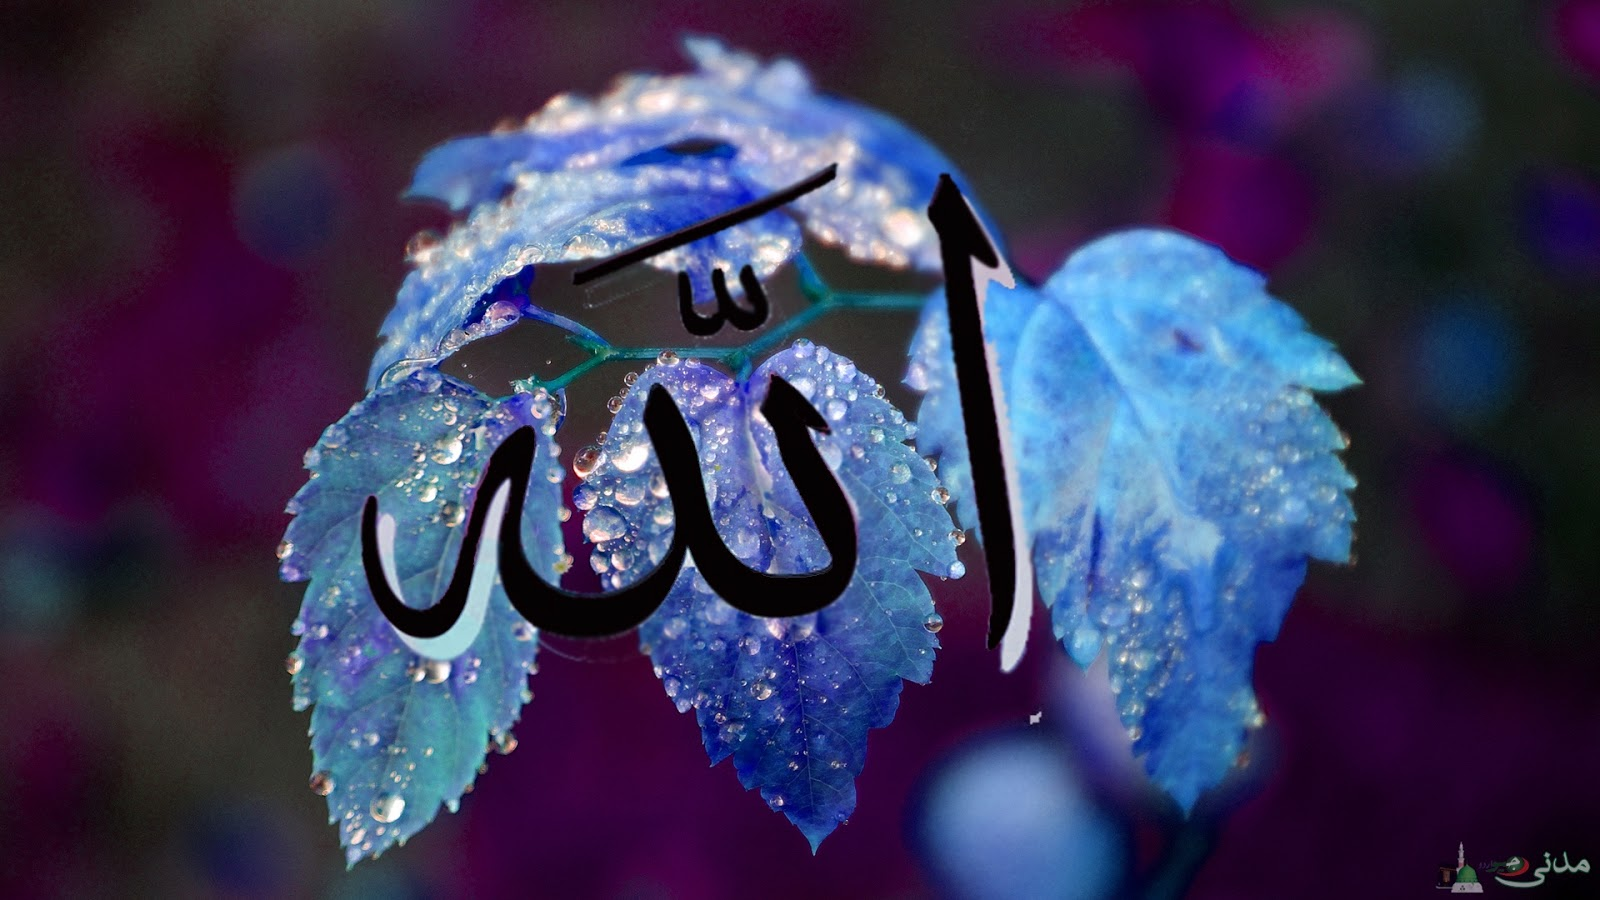 Wallpapers Allah Names The 99 Names of Allah In the Name of Allah 1600x900